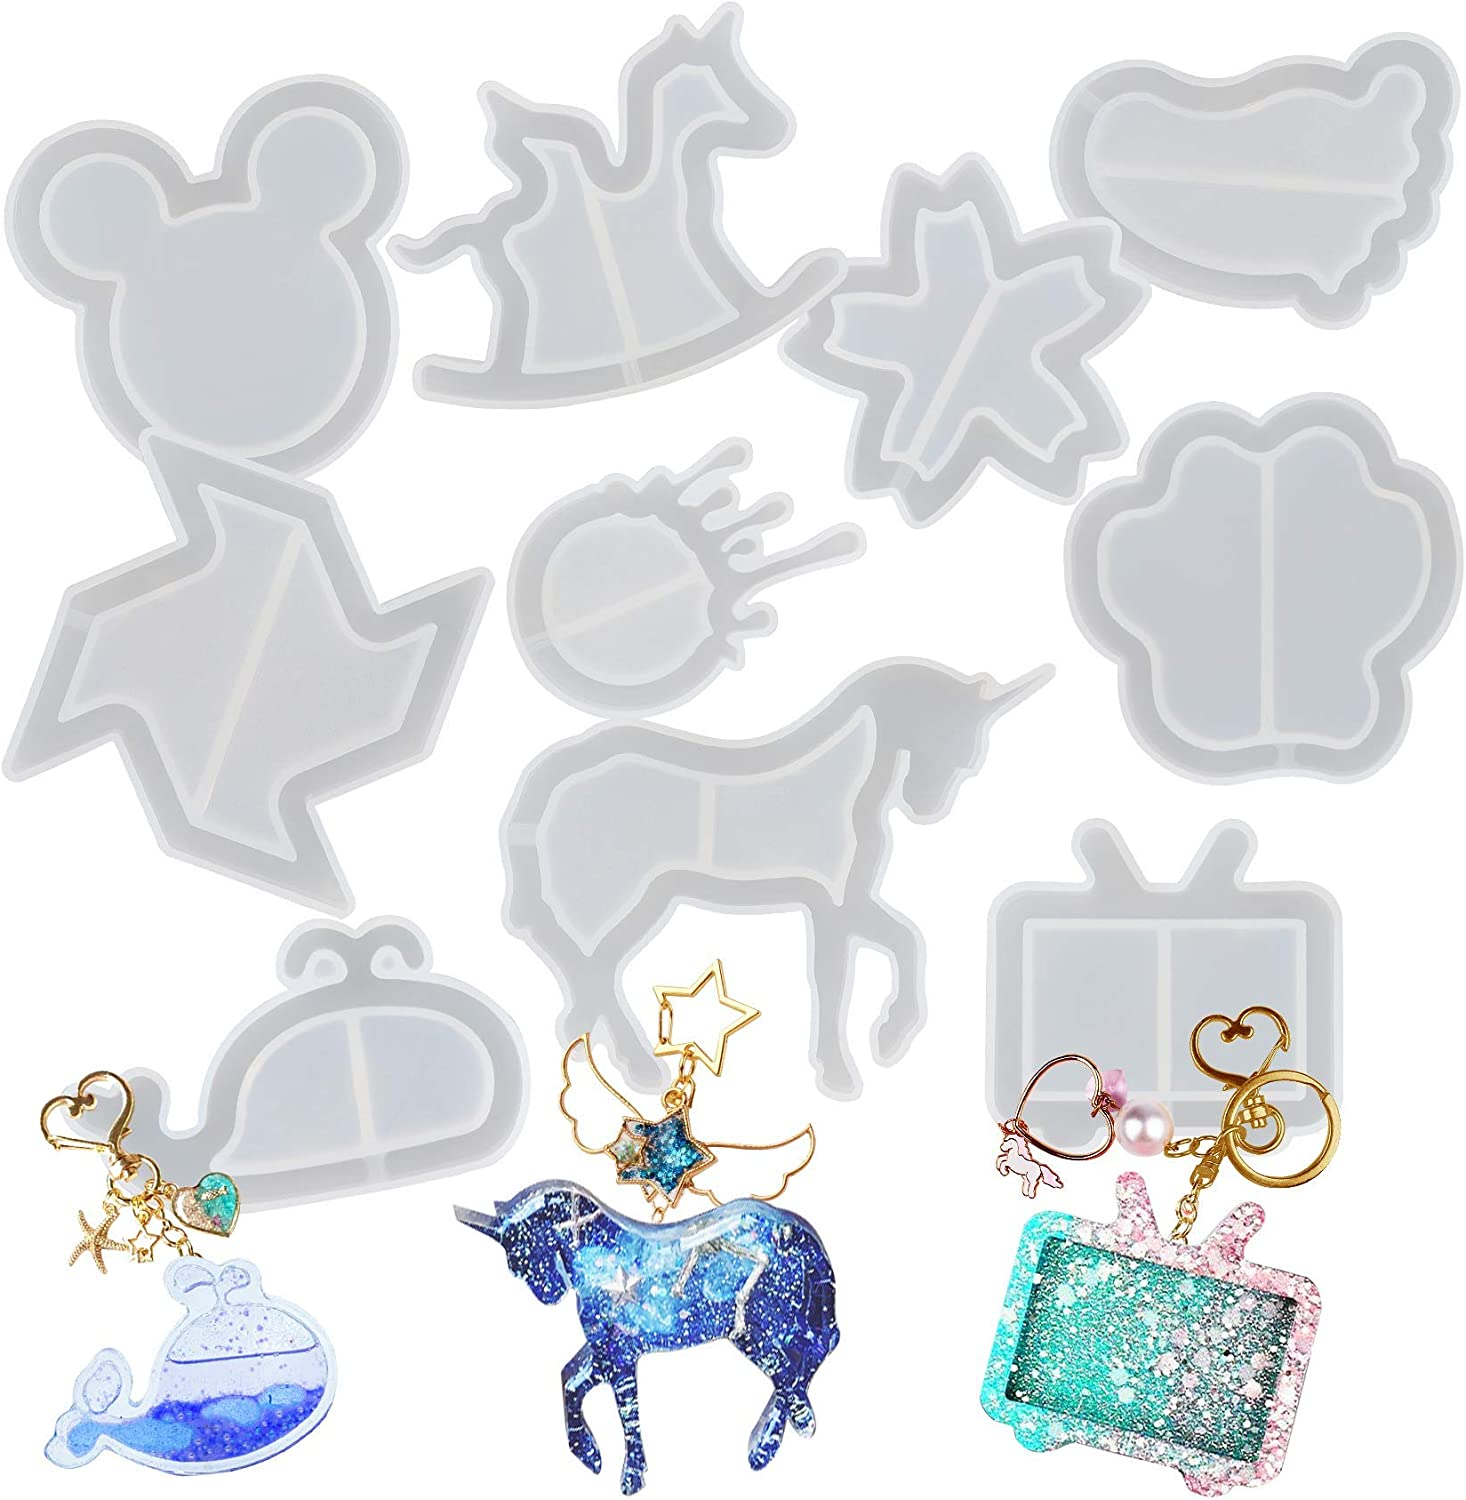 Brand New Horse Unicorn Silicon Shaker Mold For Uv And Epoxy Resin Uk Seller